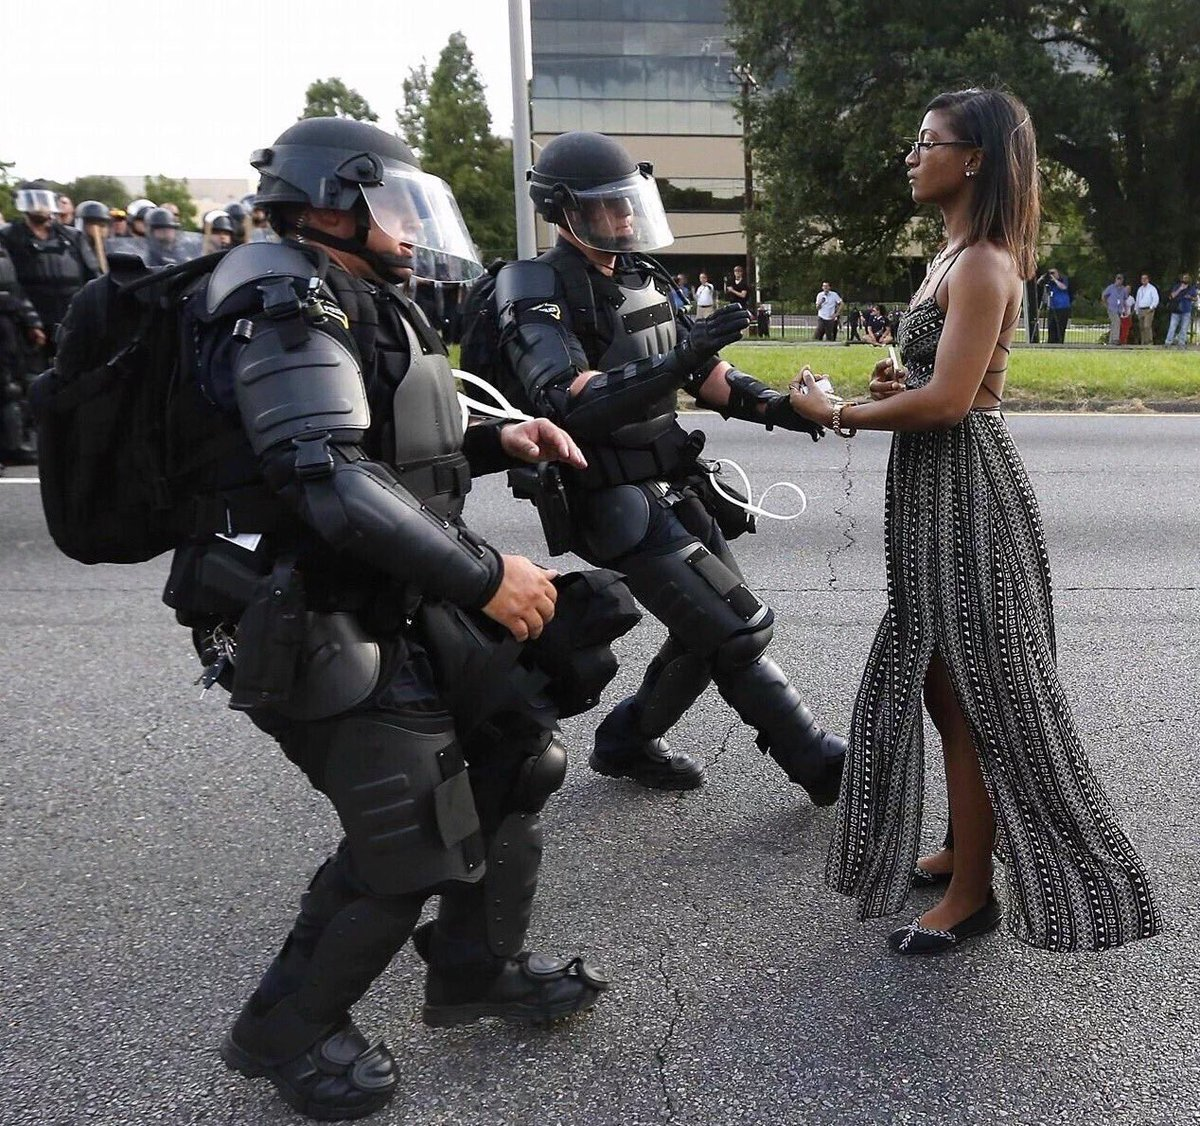 Photo of police in riot gear arresting protester in a dress strikes chord on social media